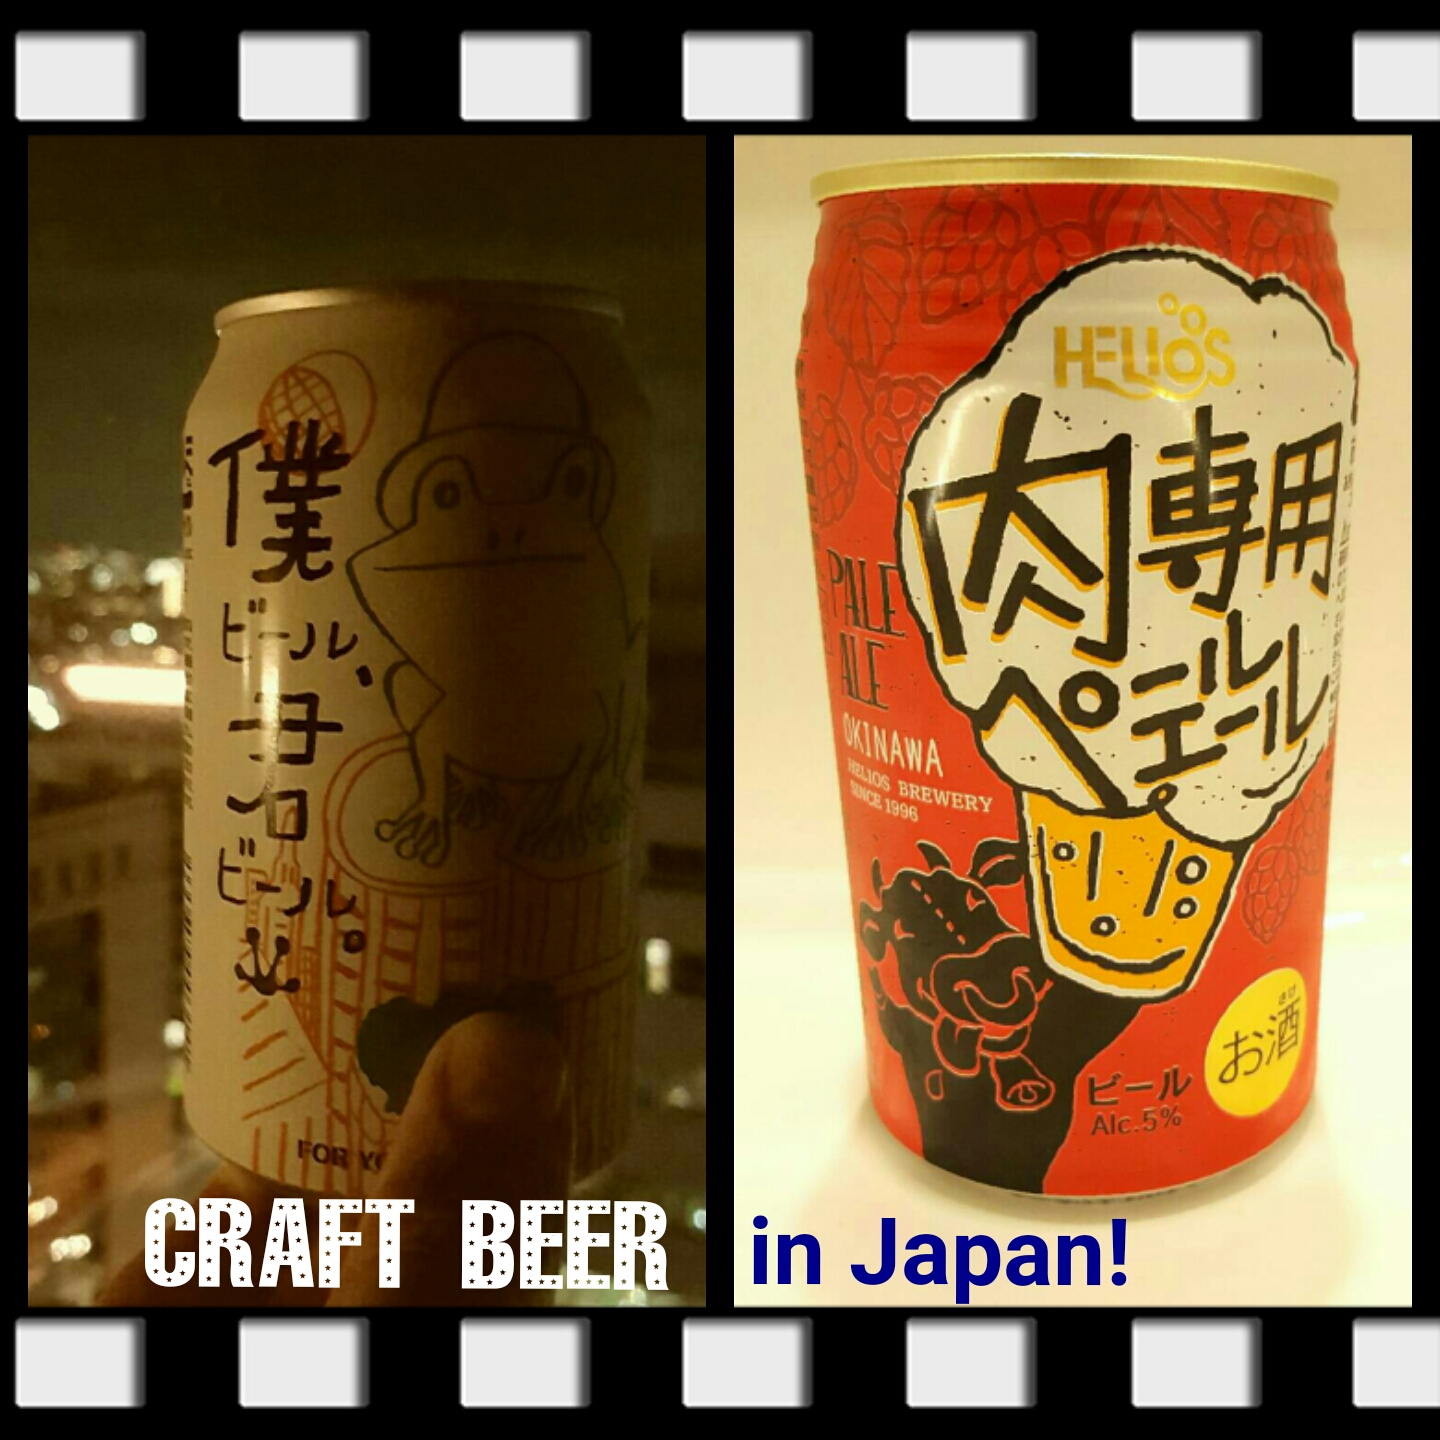 Japan's Craft Beer Choices